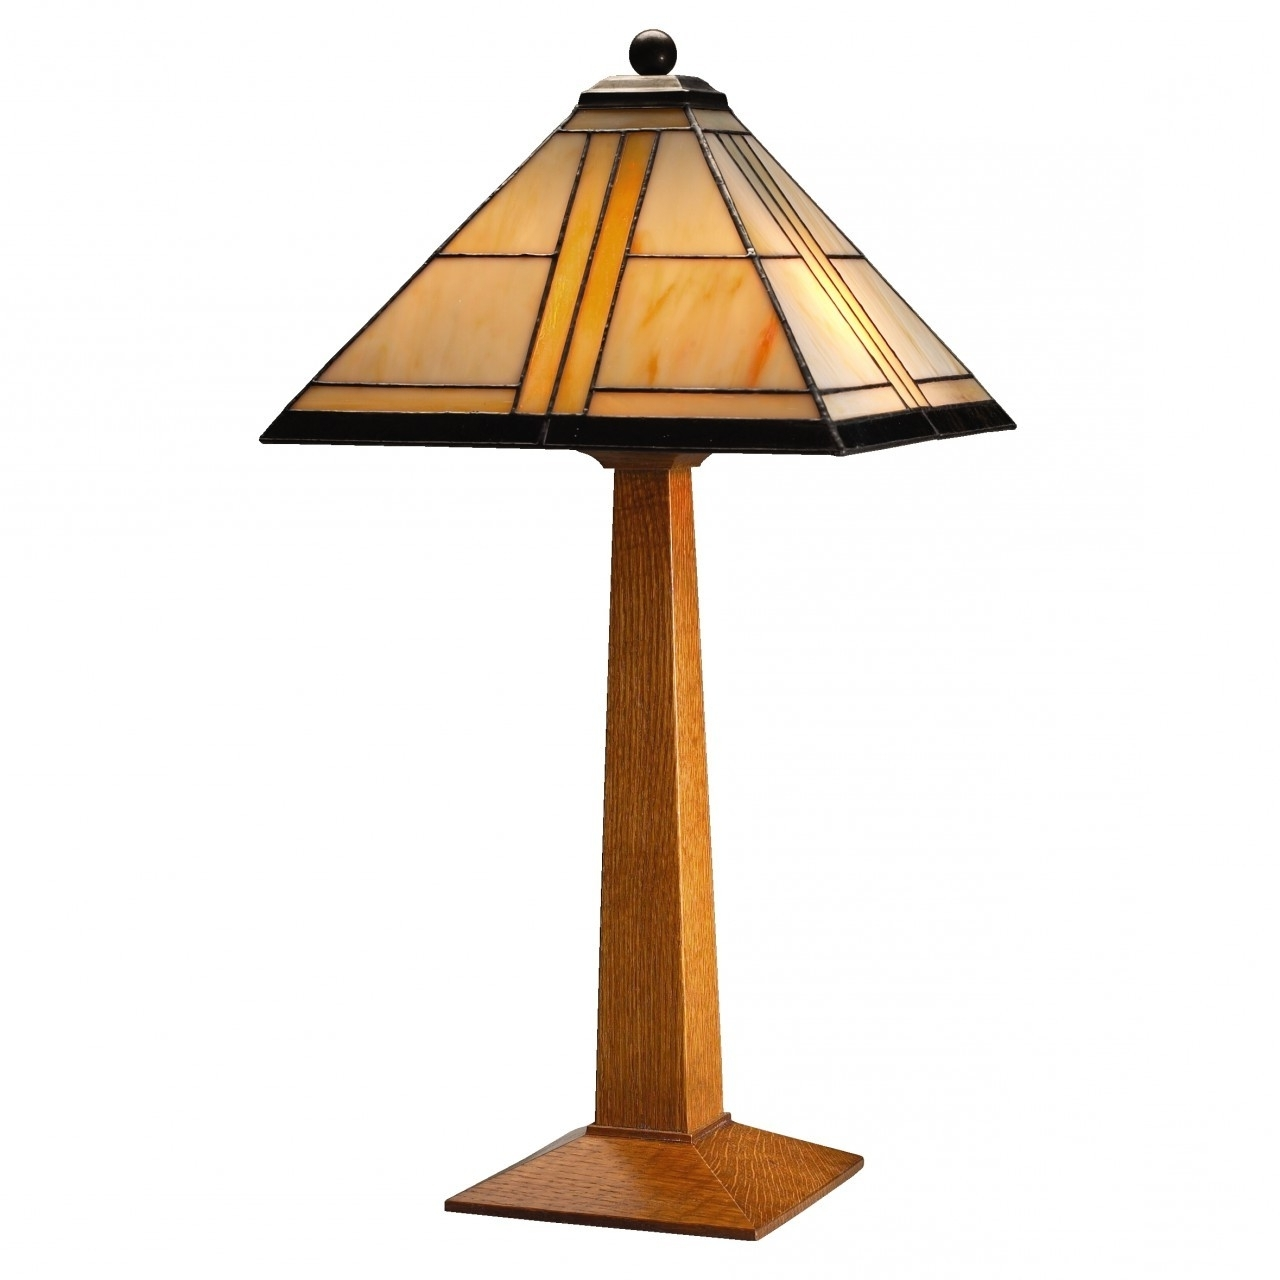 Trendy Wood Table Lamps For Living Room Within Interior: Fascinating Table Lamp Furniture For Living Room (View 16 of 20)